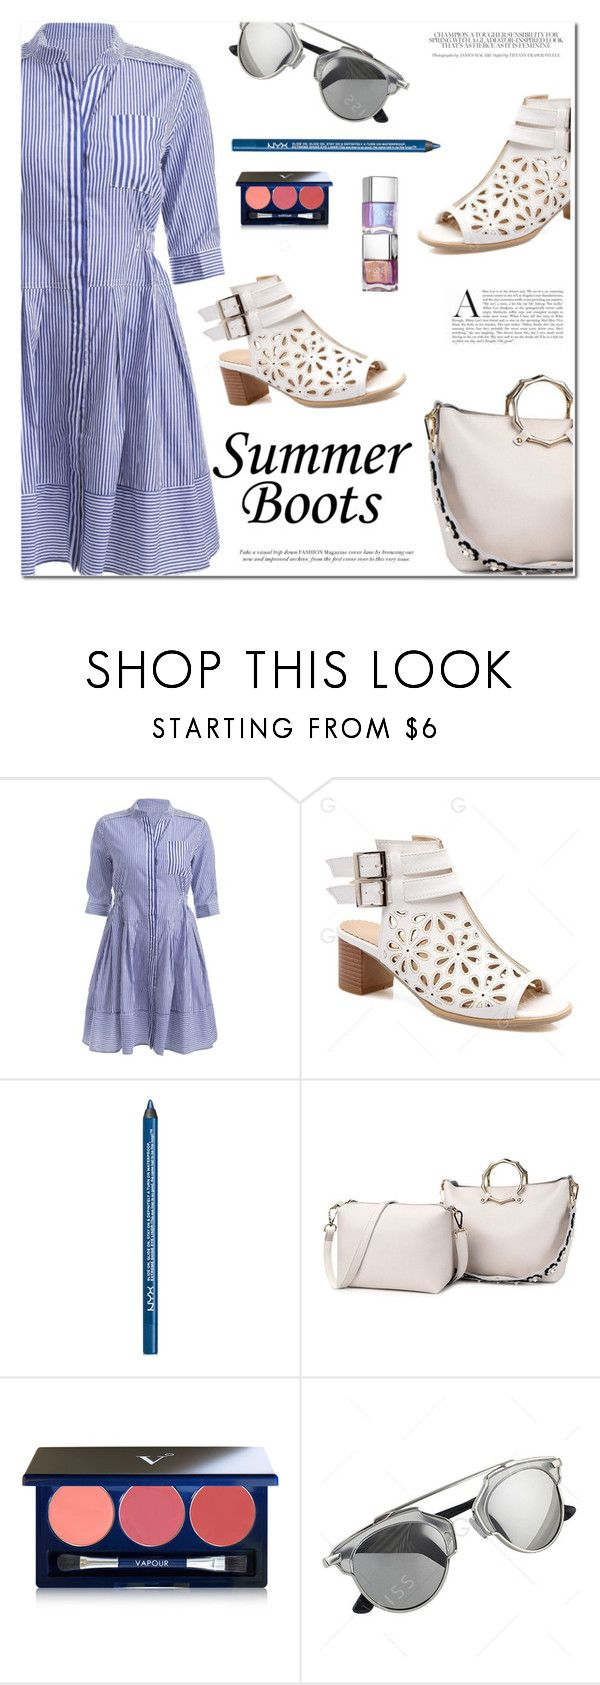 """Summer Booties"" by fshionme ❤ liked on Polyvore featuring NYX, Vapour and summerbooties"